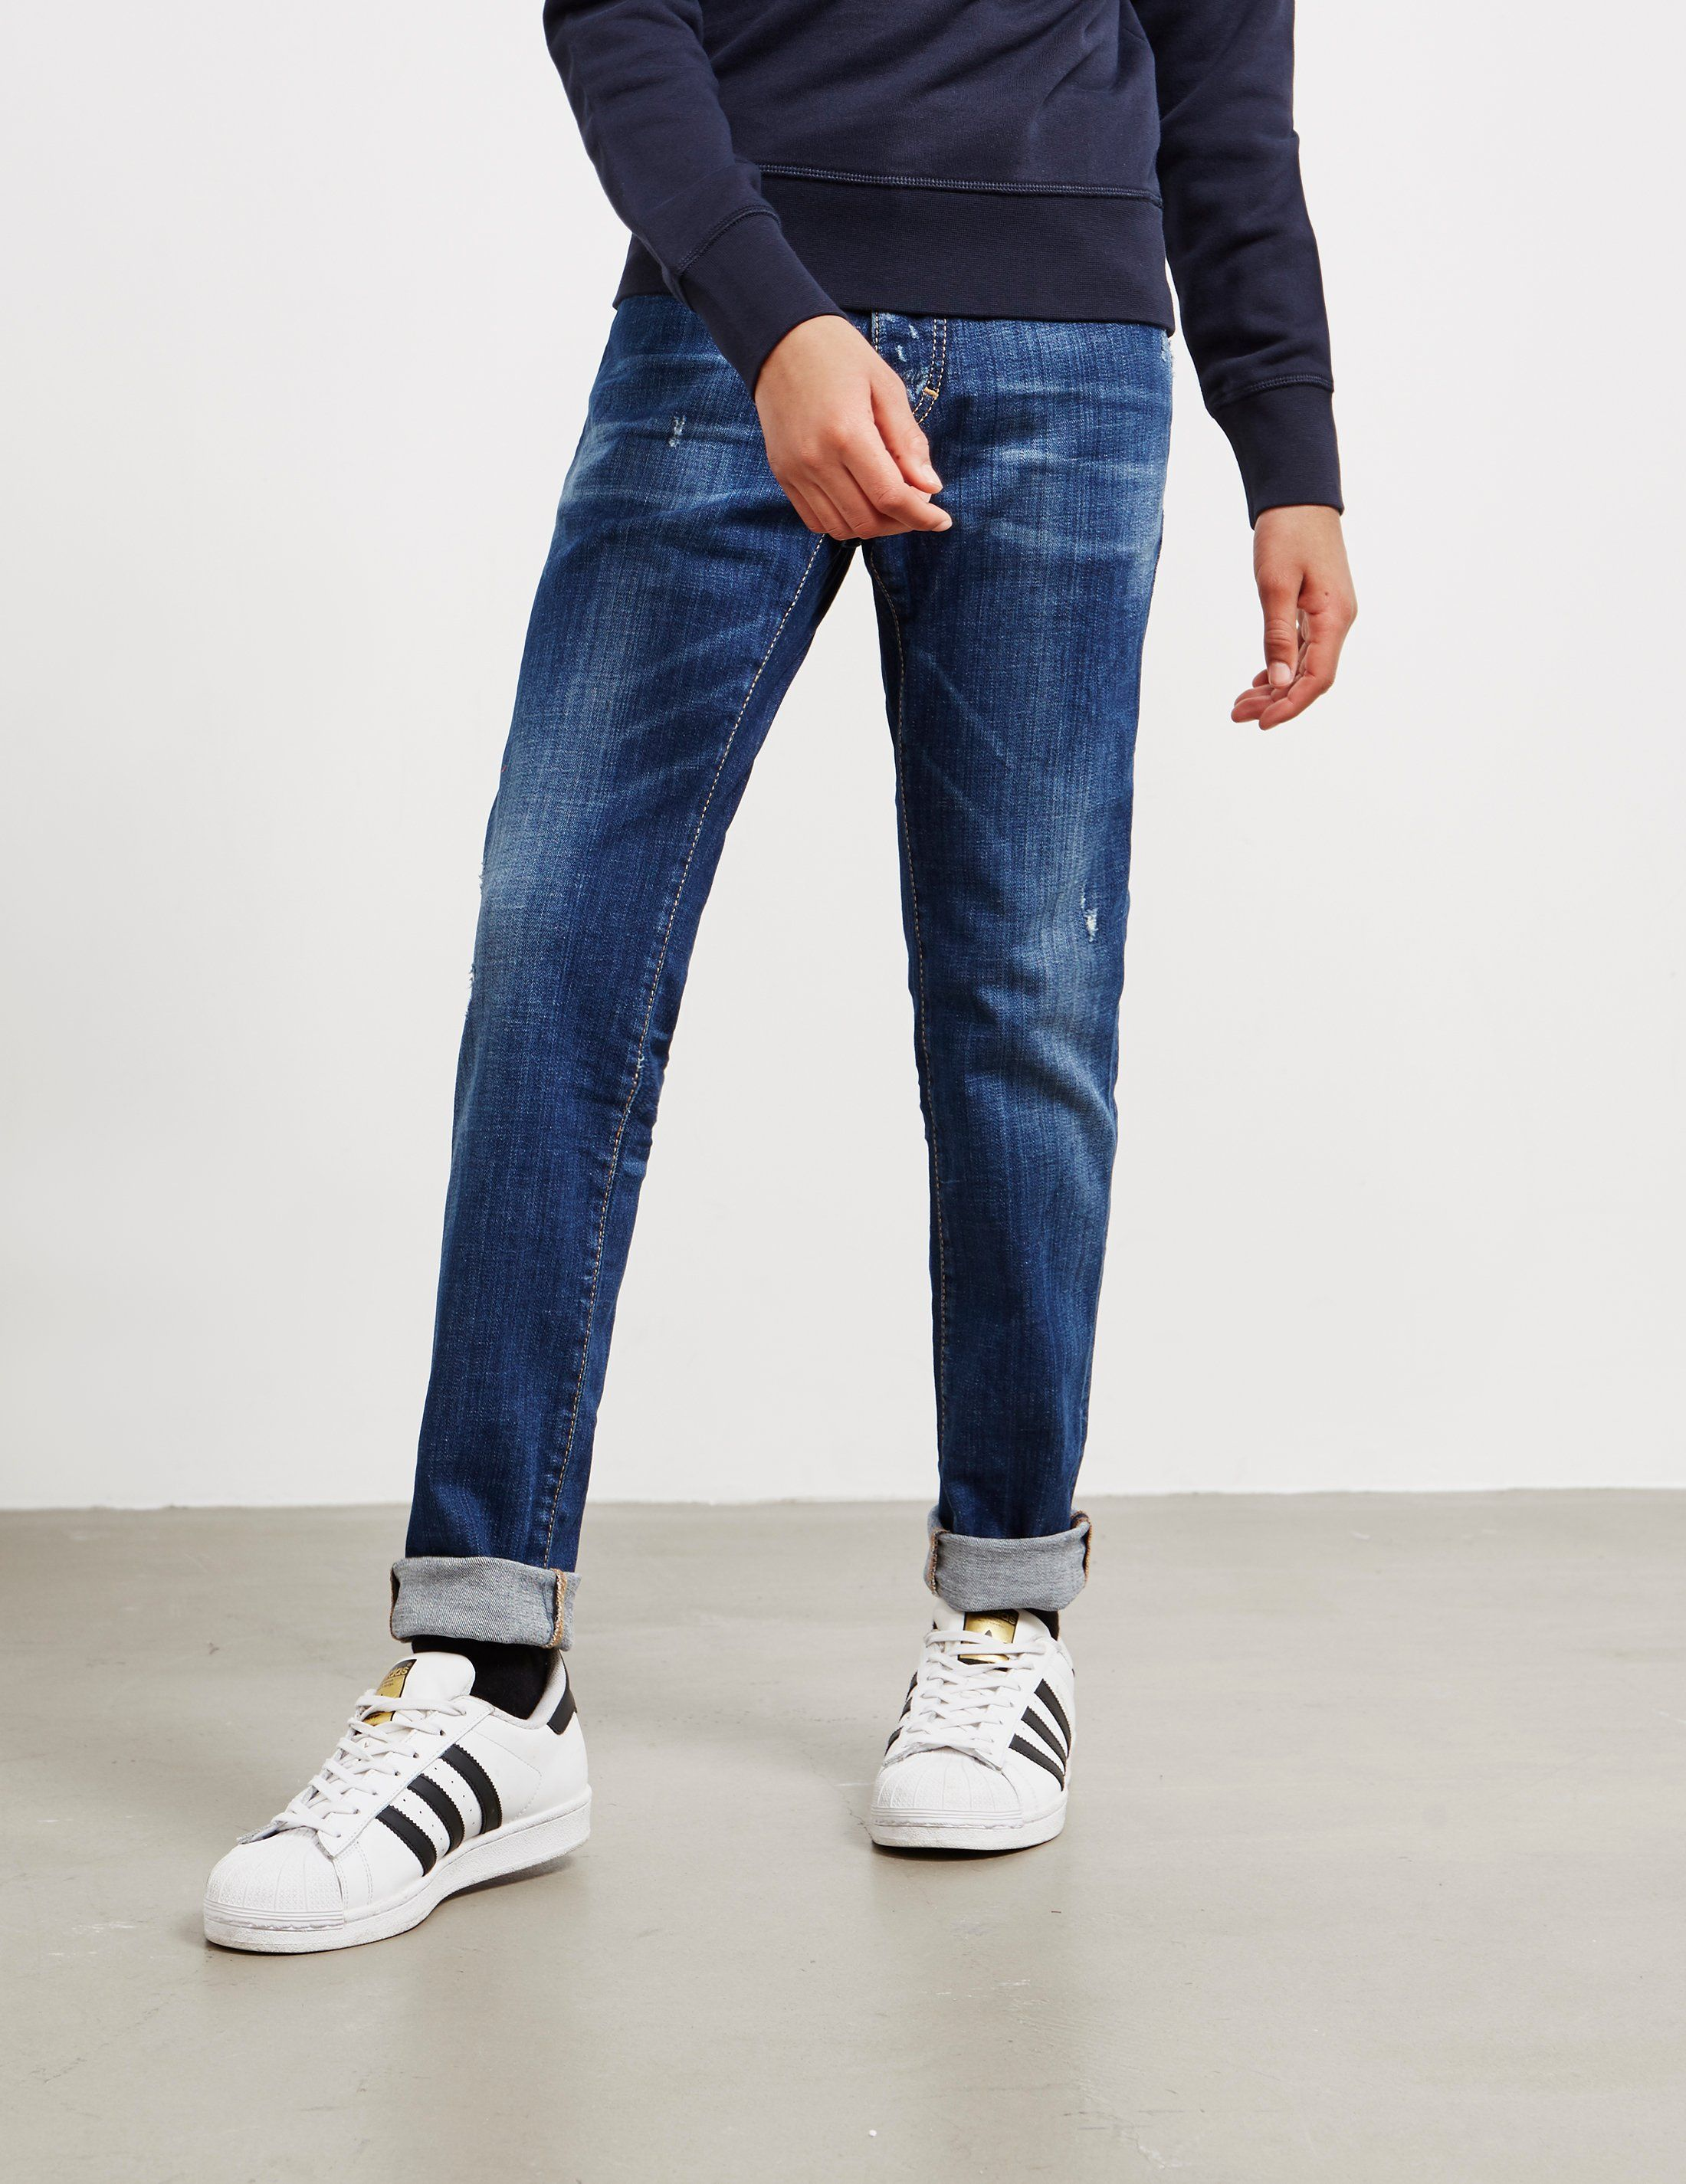 Dsquared2 Cool Guy Jeans - Online Exclusive